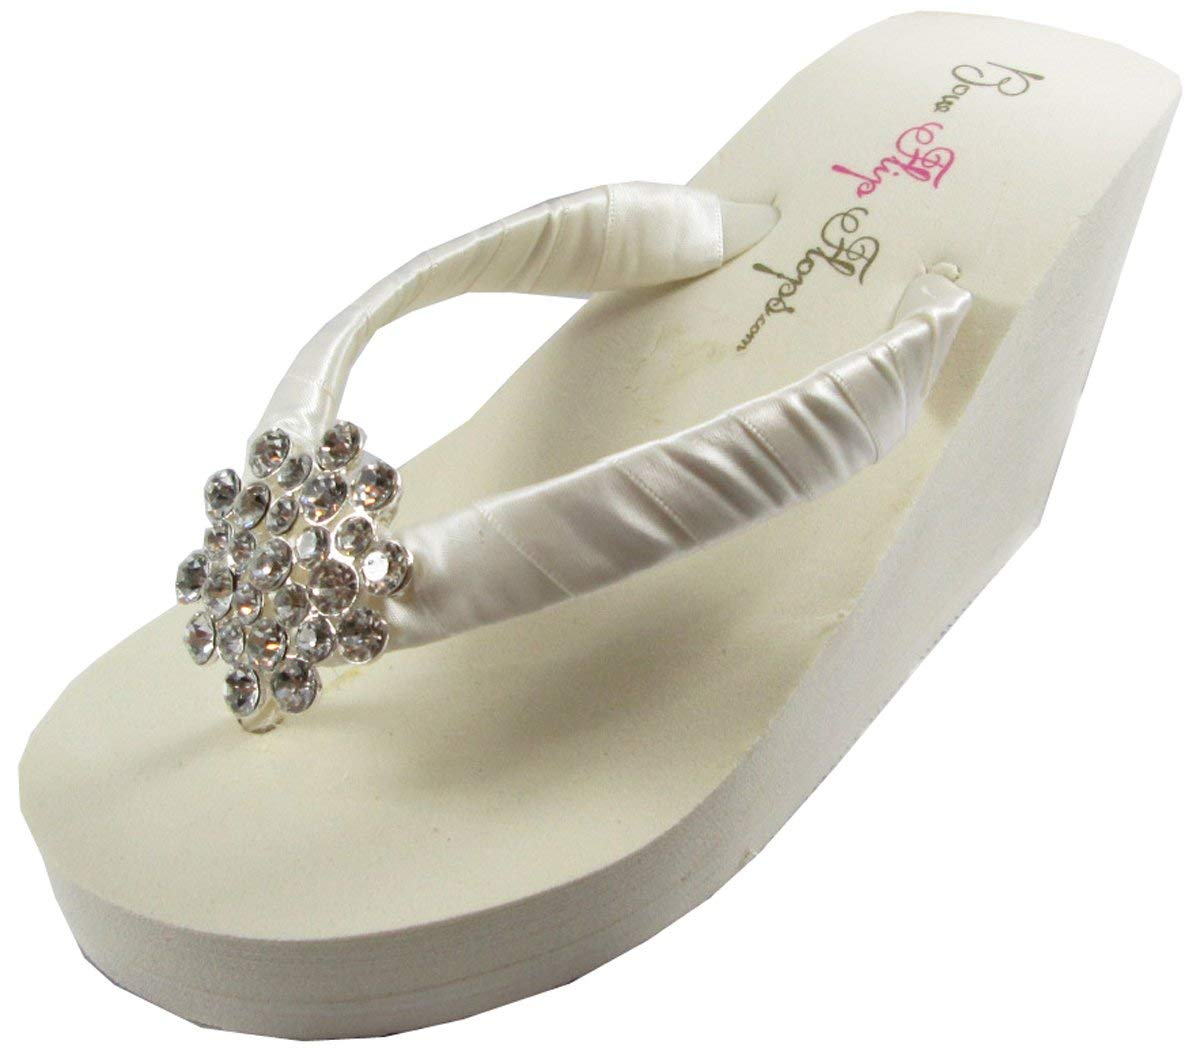 5998725f8 Get Quotations · Rhinestone Jewel Flip Flops Womens Bridal Wedding Platform  Heel Satin Rhinestone